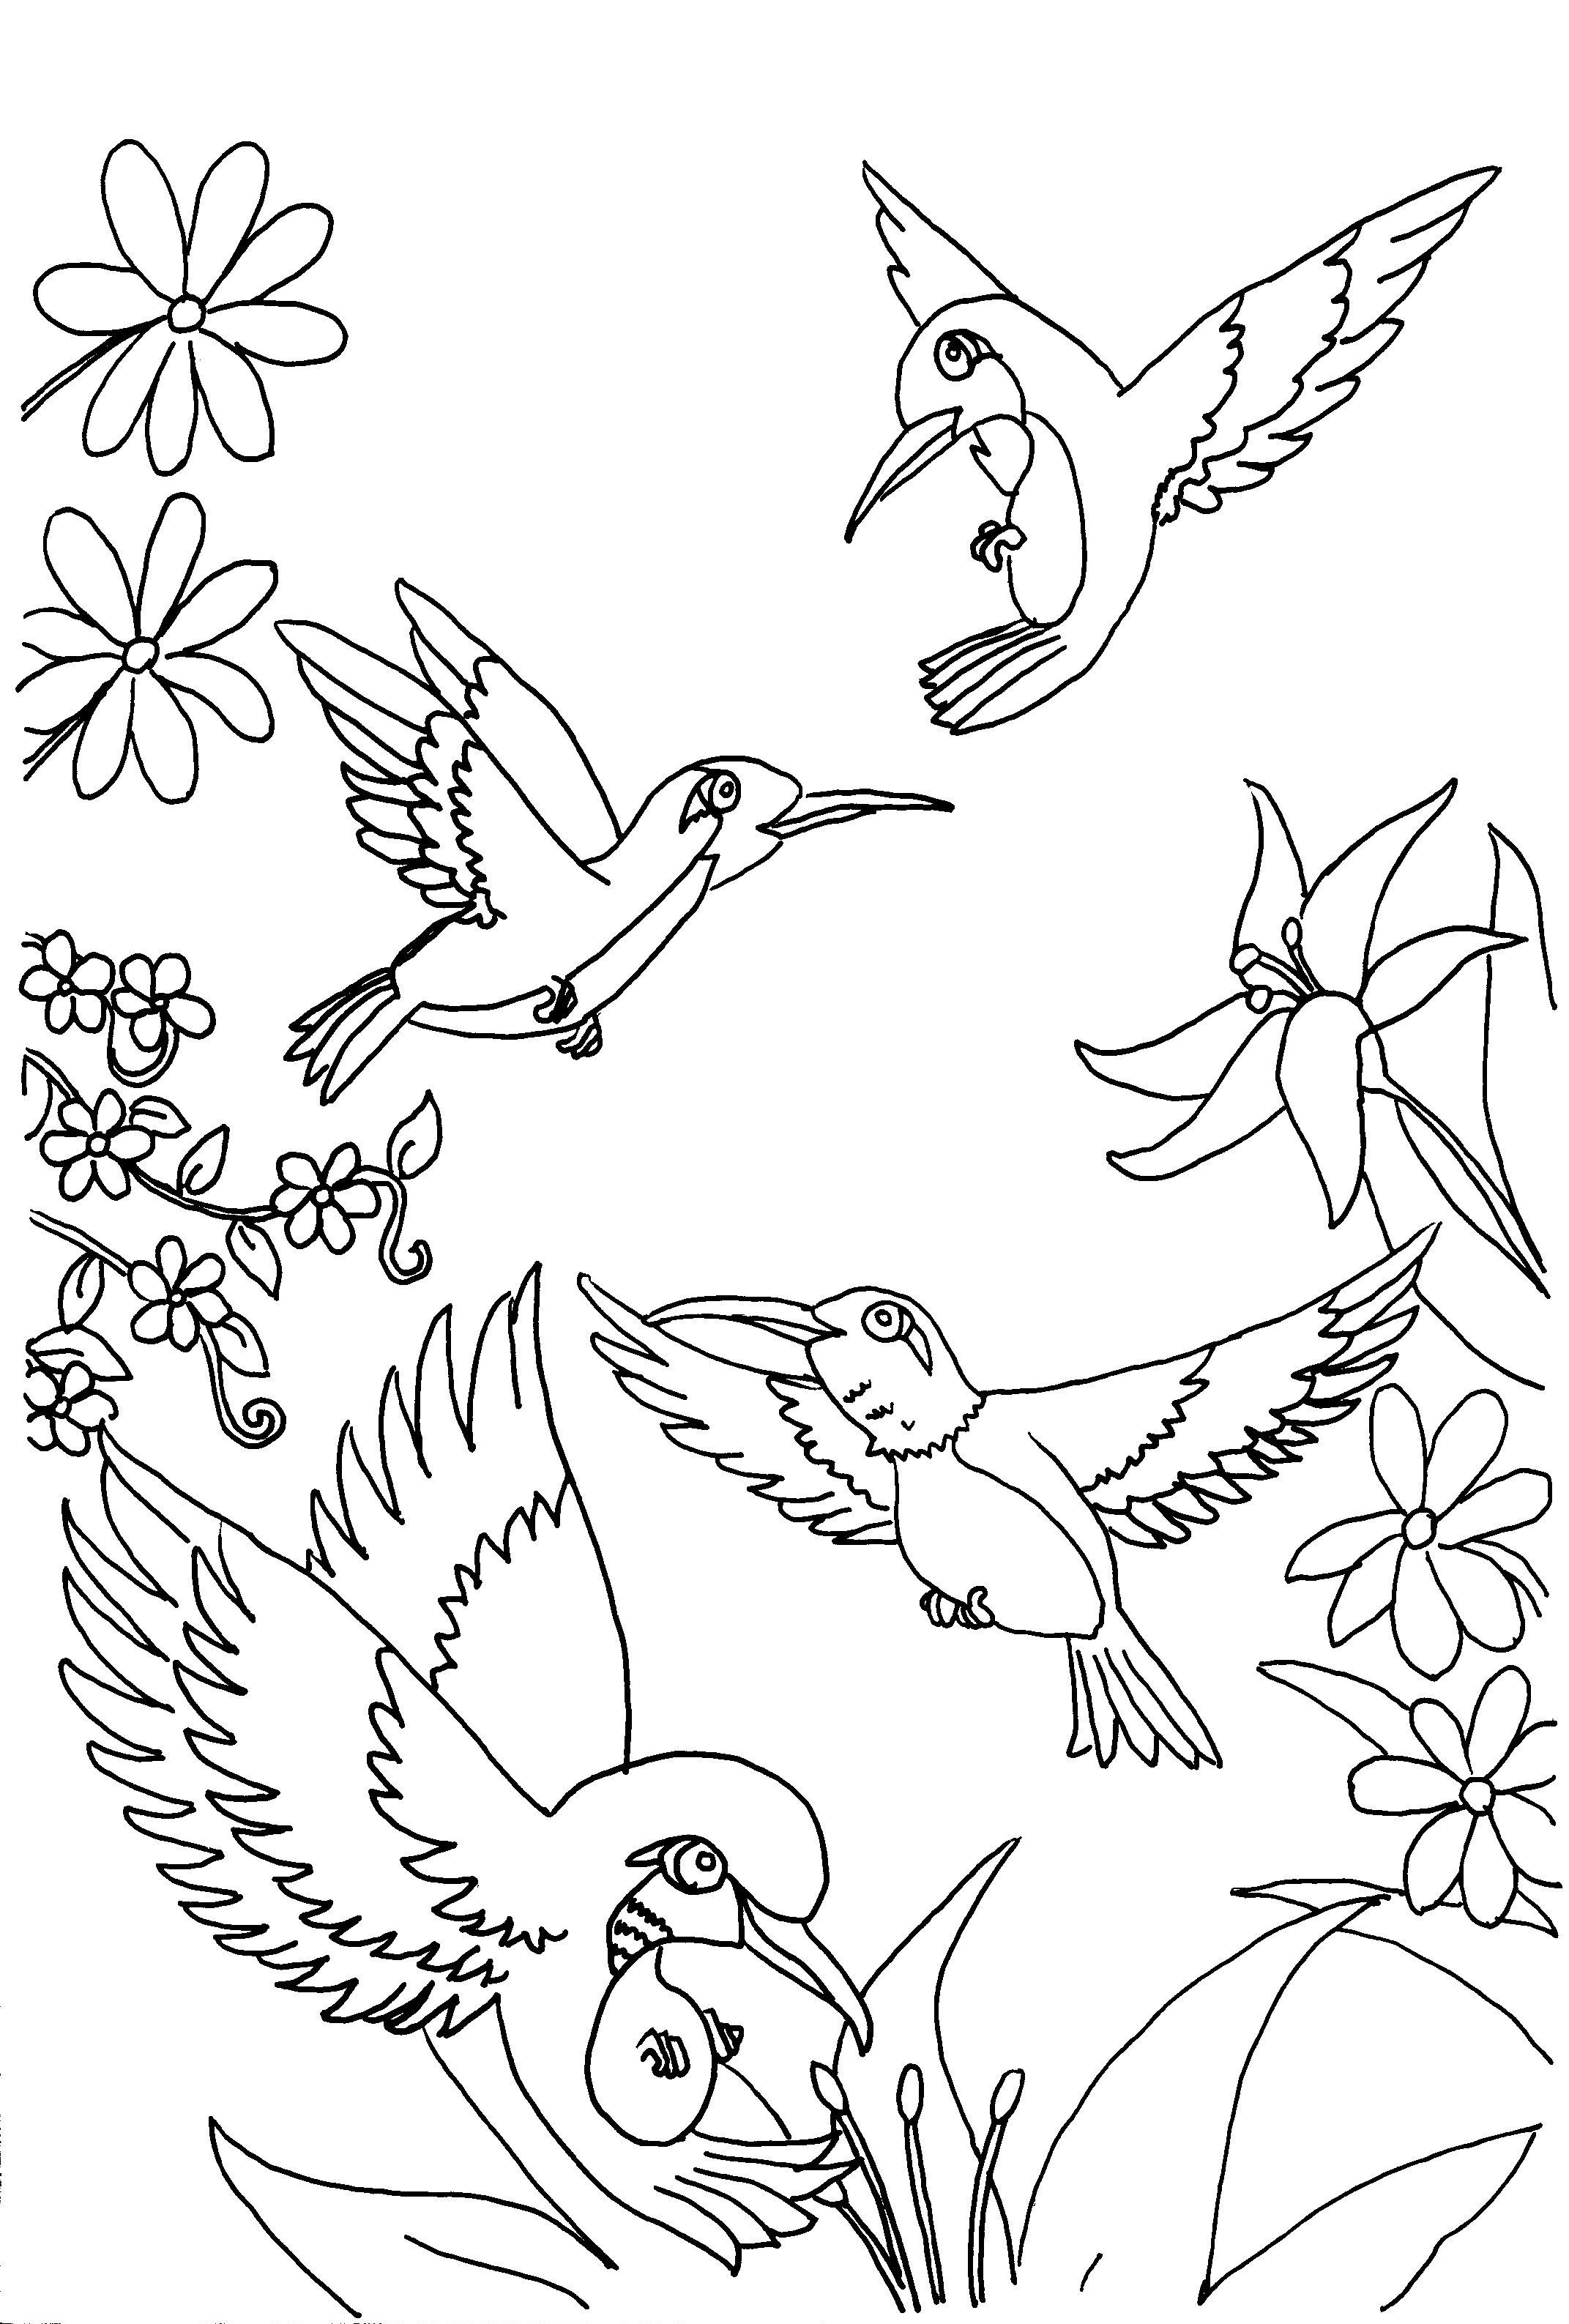 Hummingbirds | Adult Coloring Pages | Bird coloring pages ...